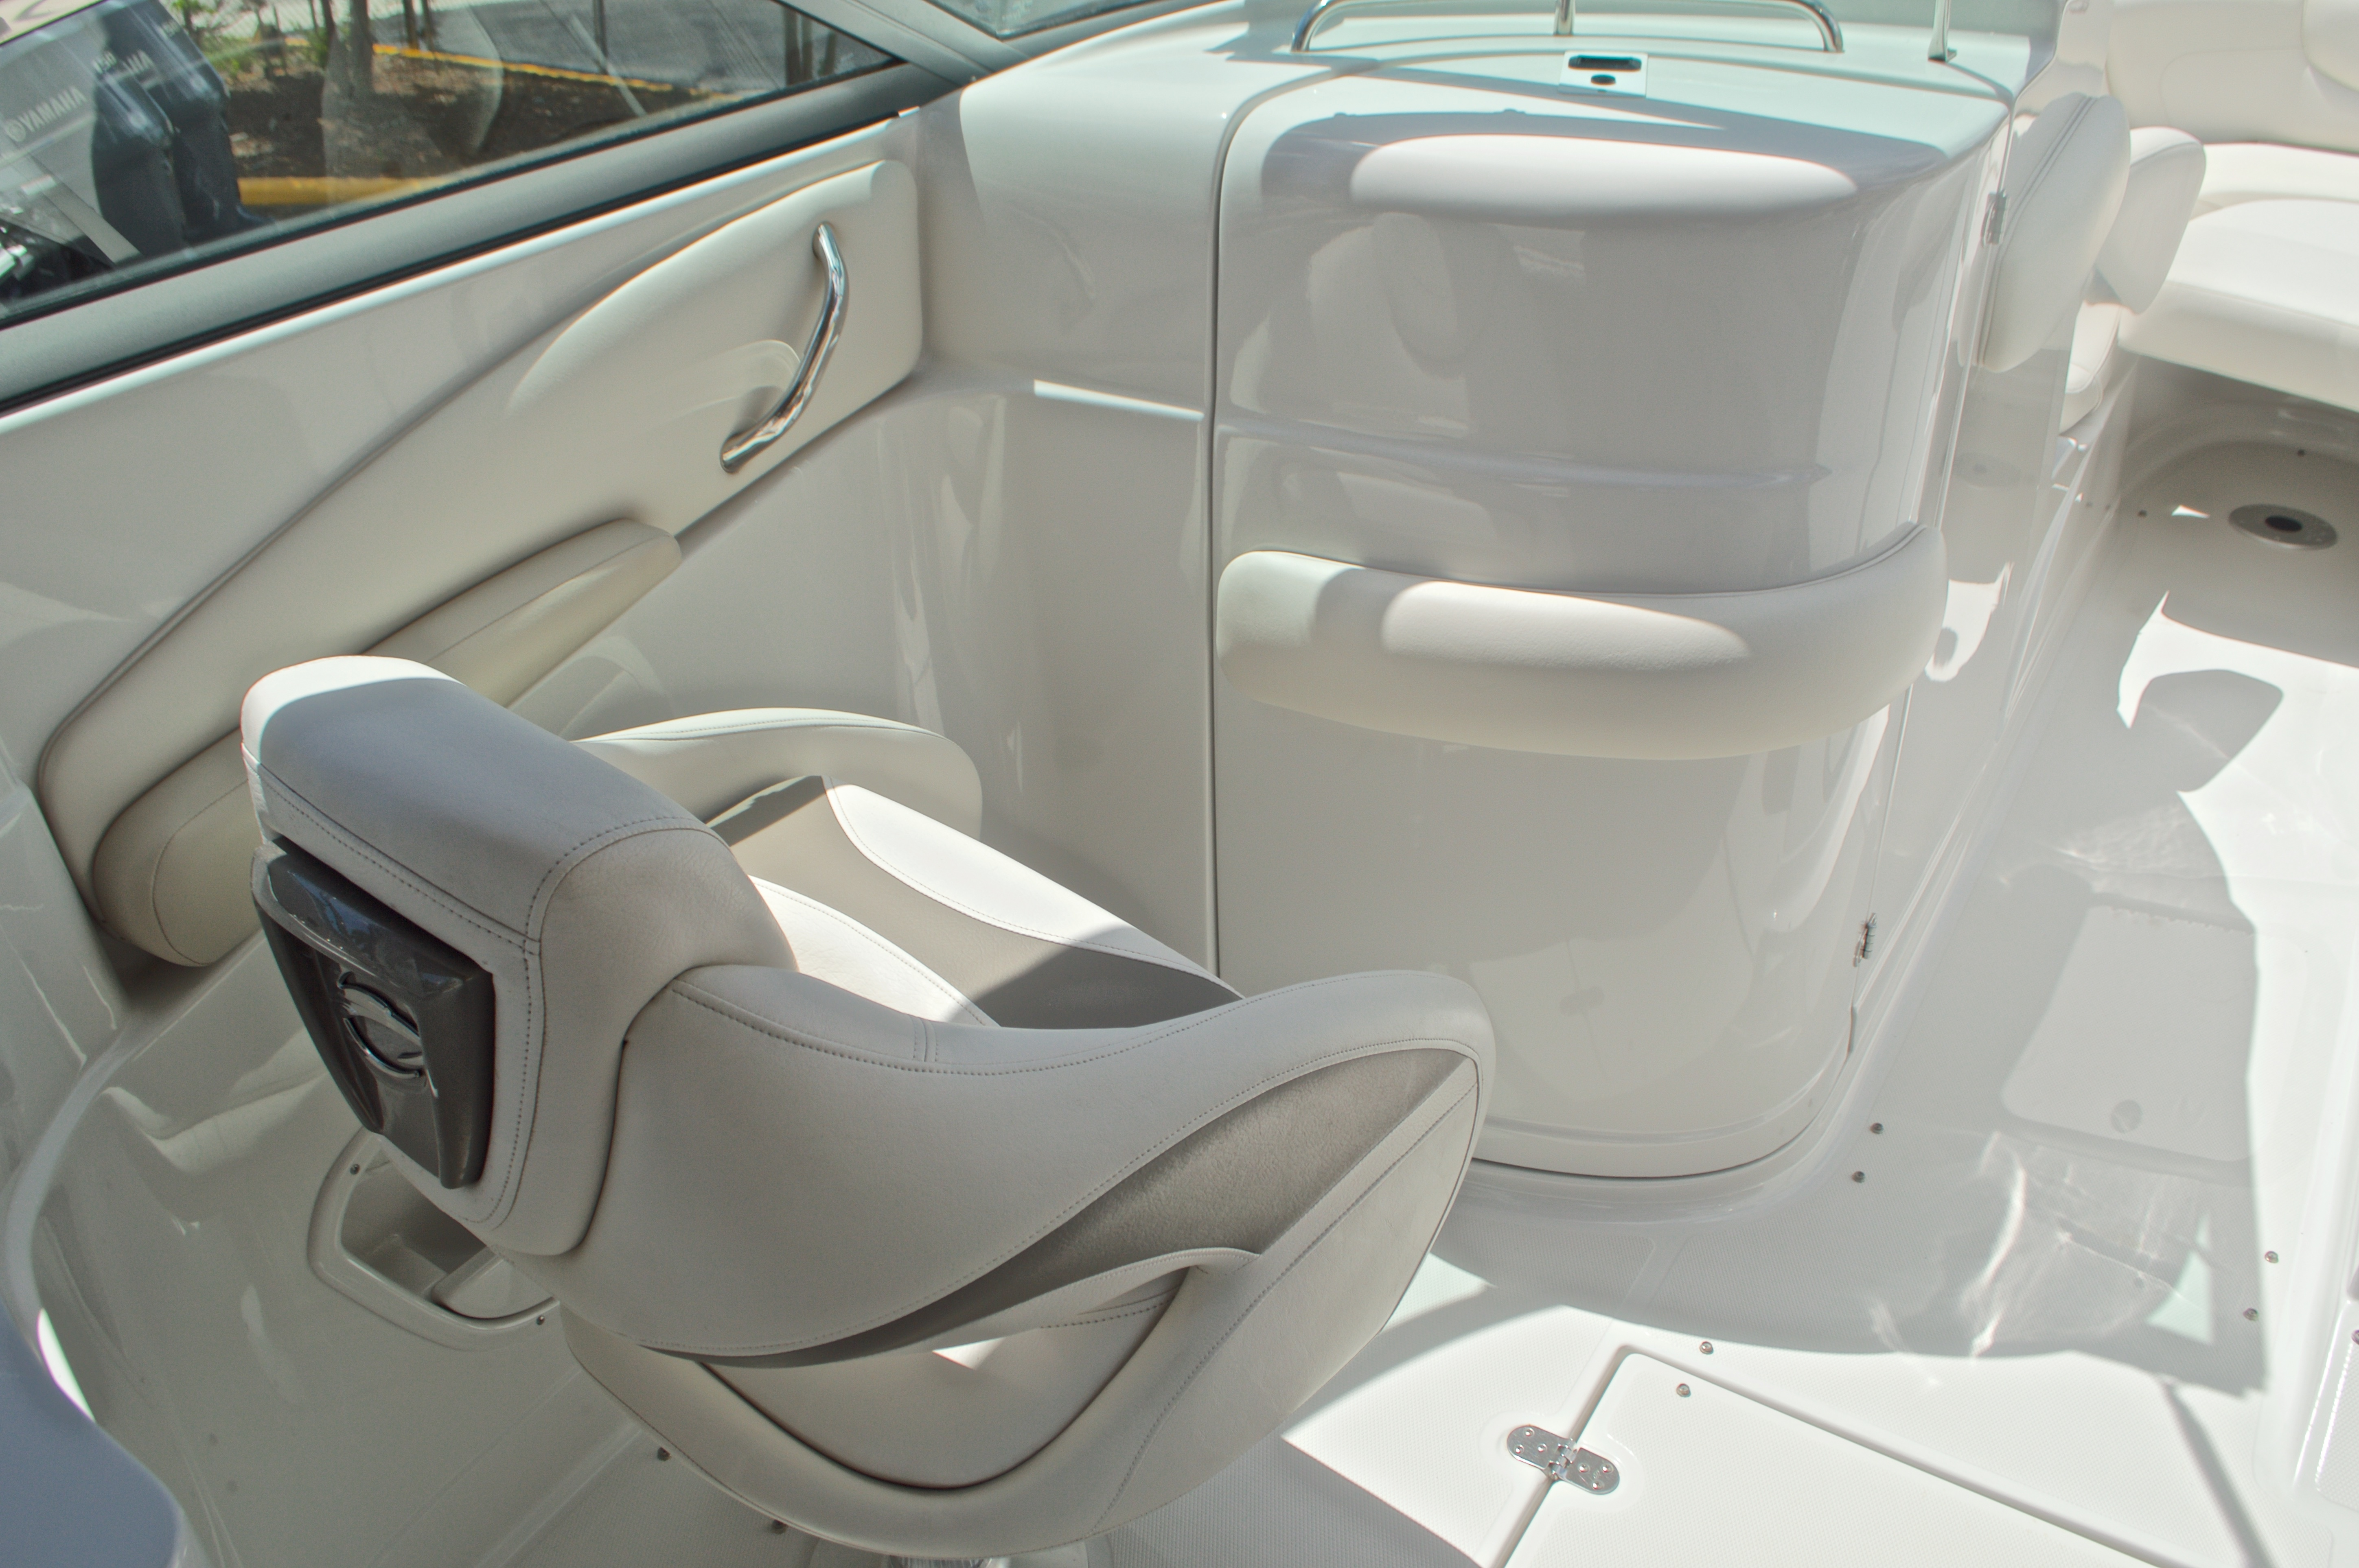 Thumbnail 38 for Used 2009 Crownline 300 LS boat for sale in West Palm Beach, FL